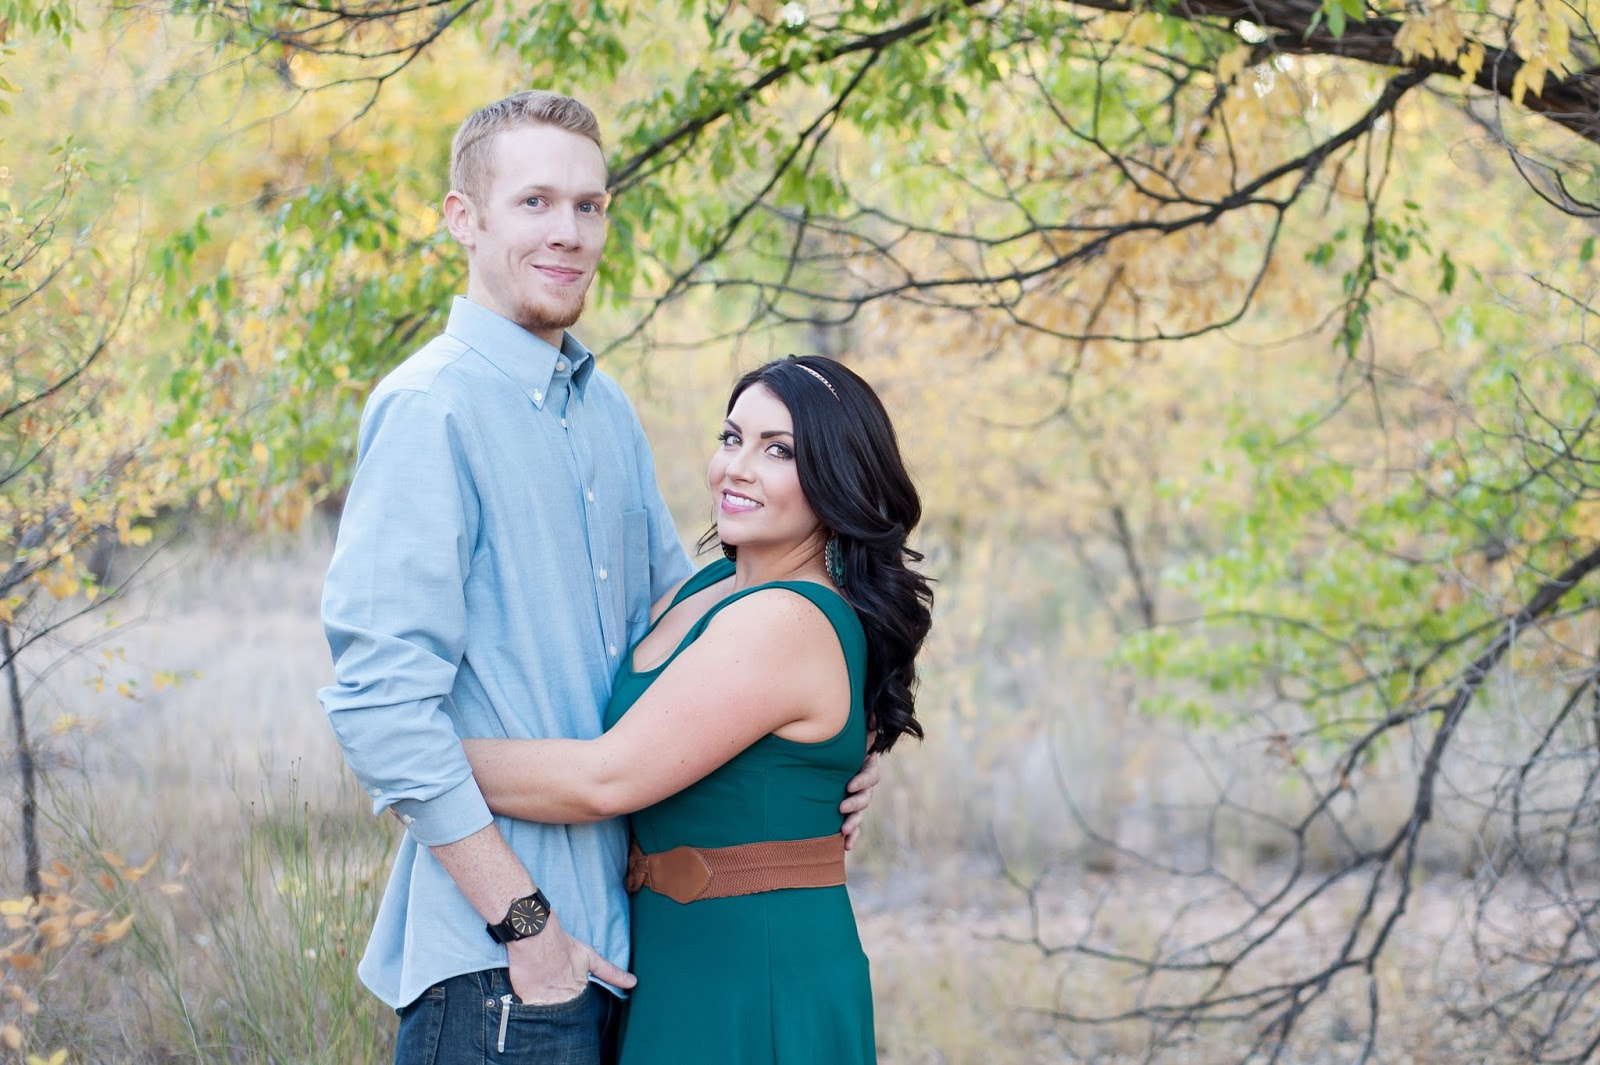 Fall engagement shoot, fall engagement photos, albuquerque engagement photos in fall, albuquerque engagement, engagement photos in fall, albuquerque wedding photographers, albuquerque wedding photographer, photographers  in albuquerque, fall photoshoot, fall photos